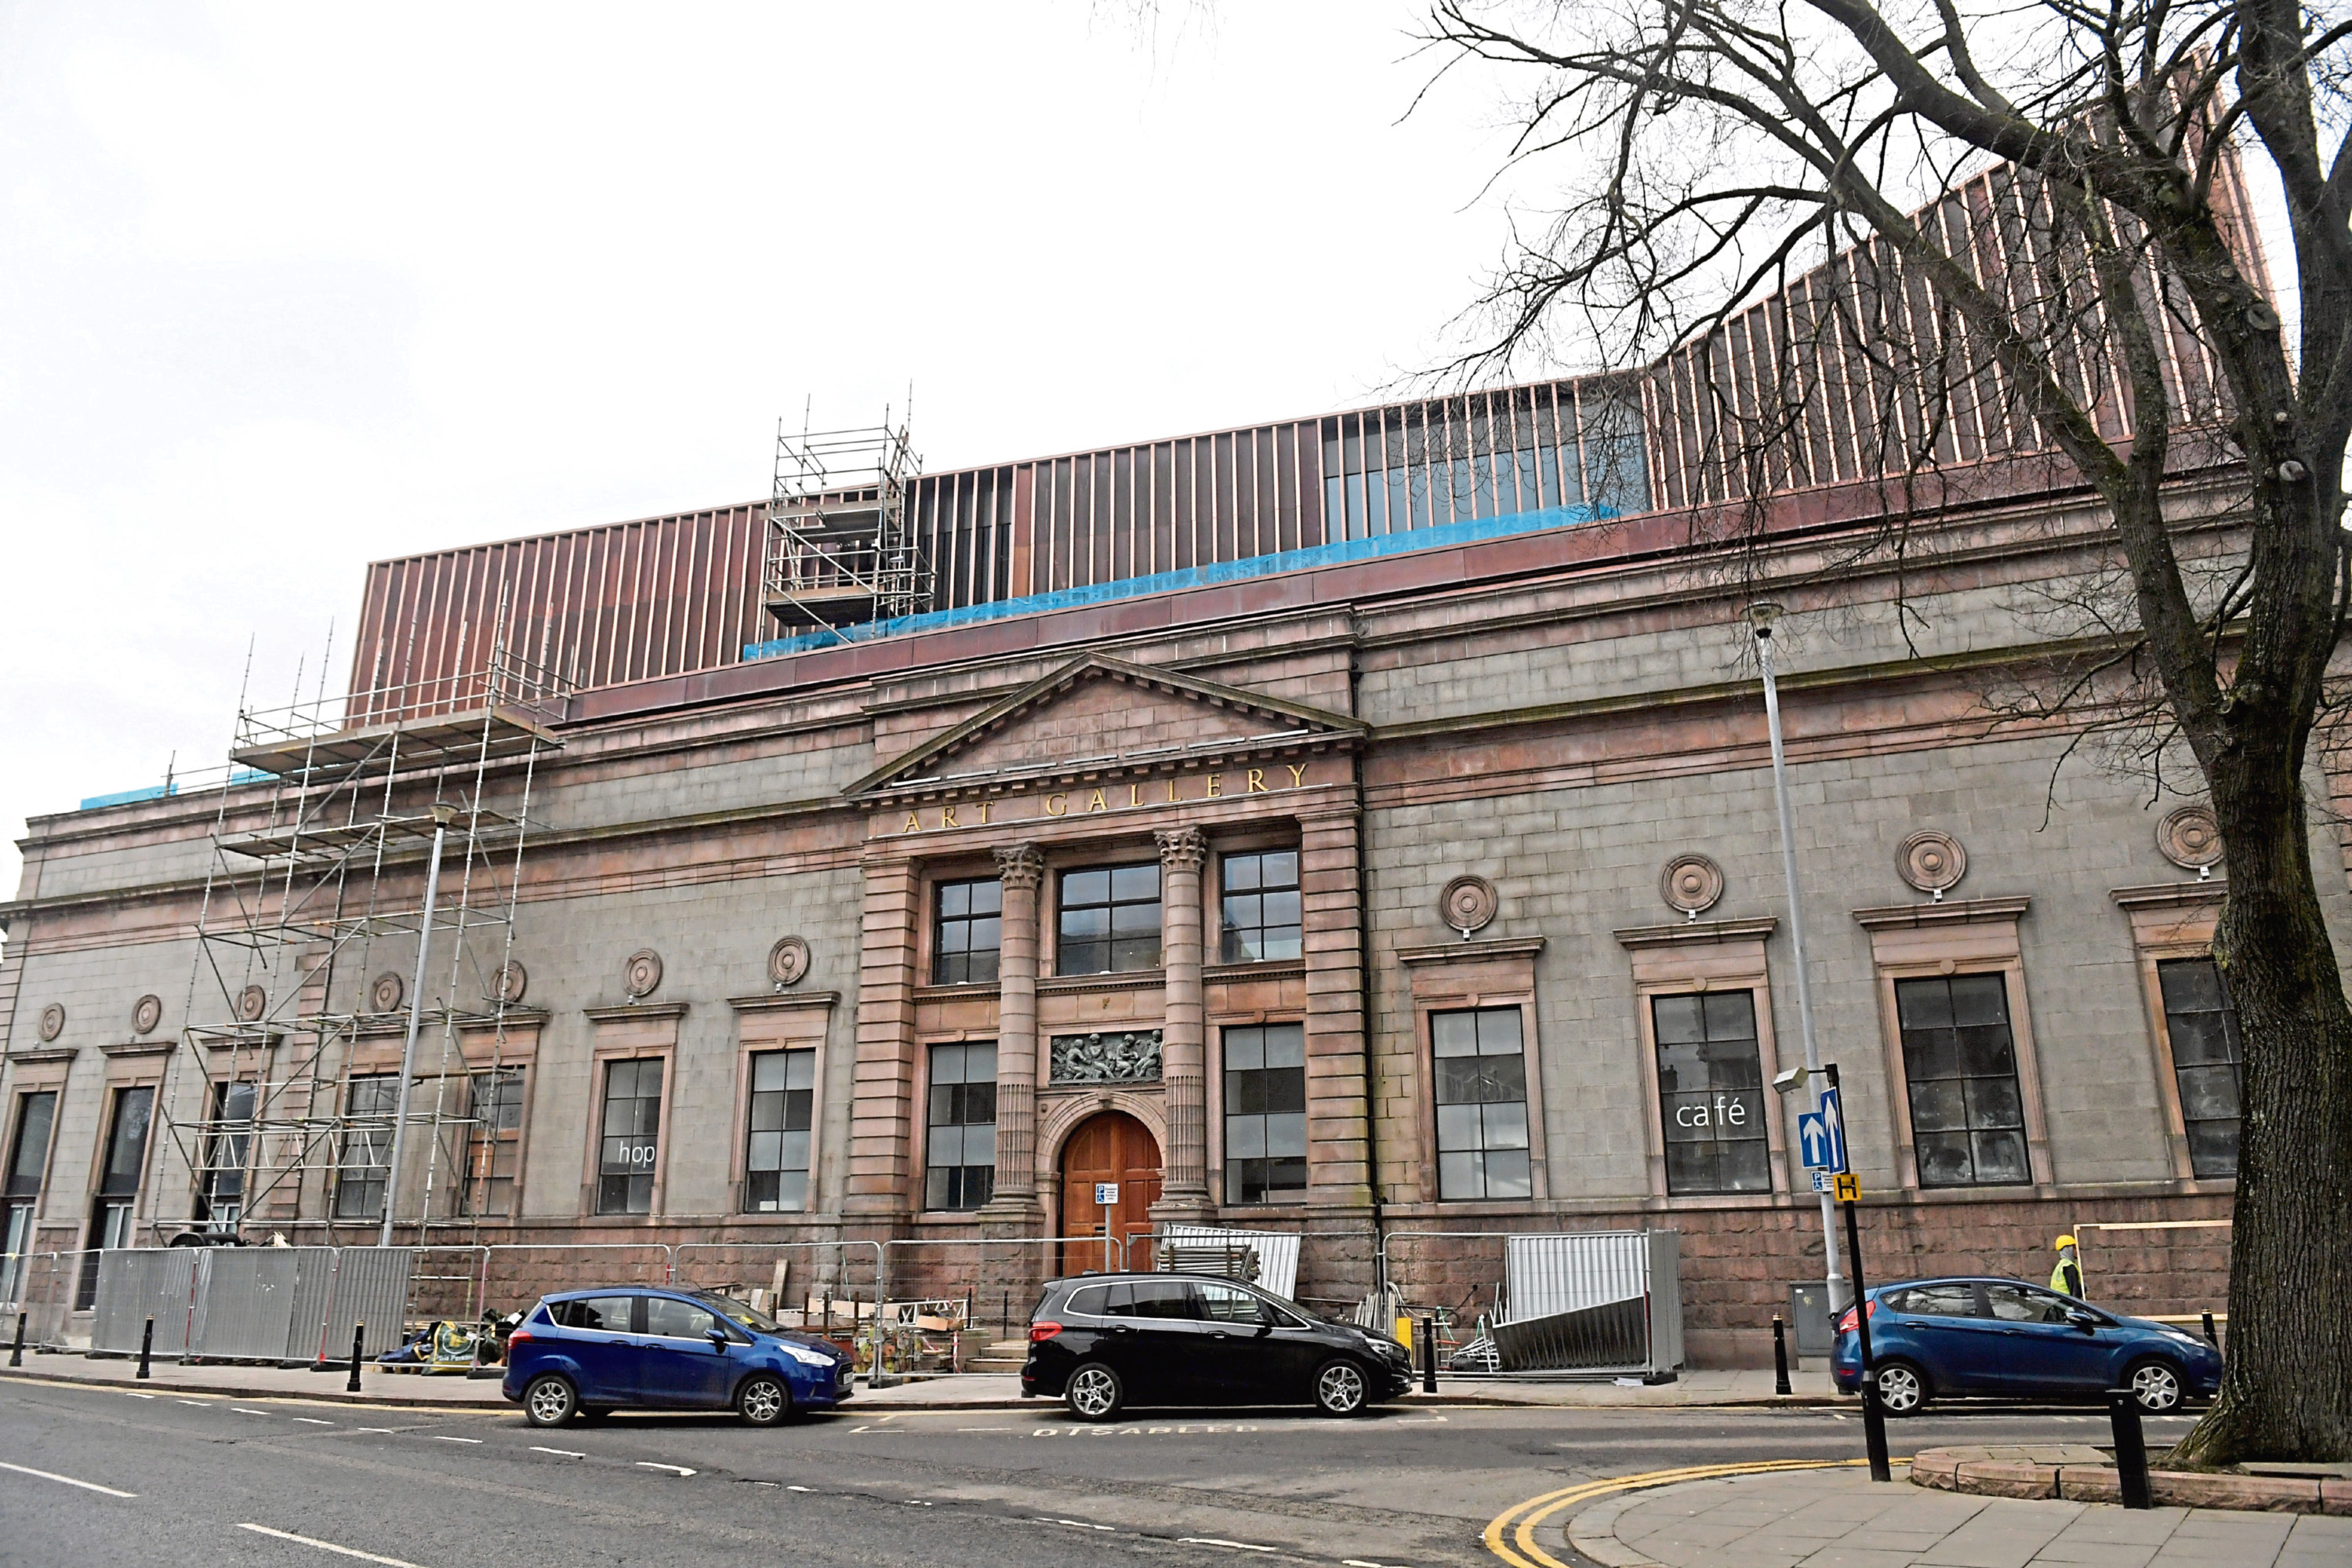 Aberdeen Art Gallery could get a new entrance as part of a makeover for the area